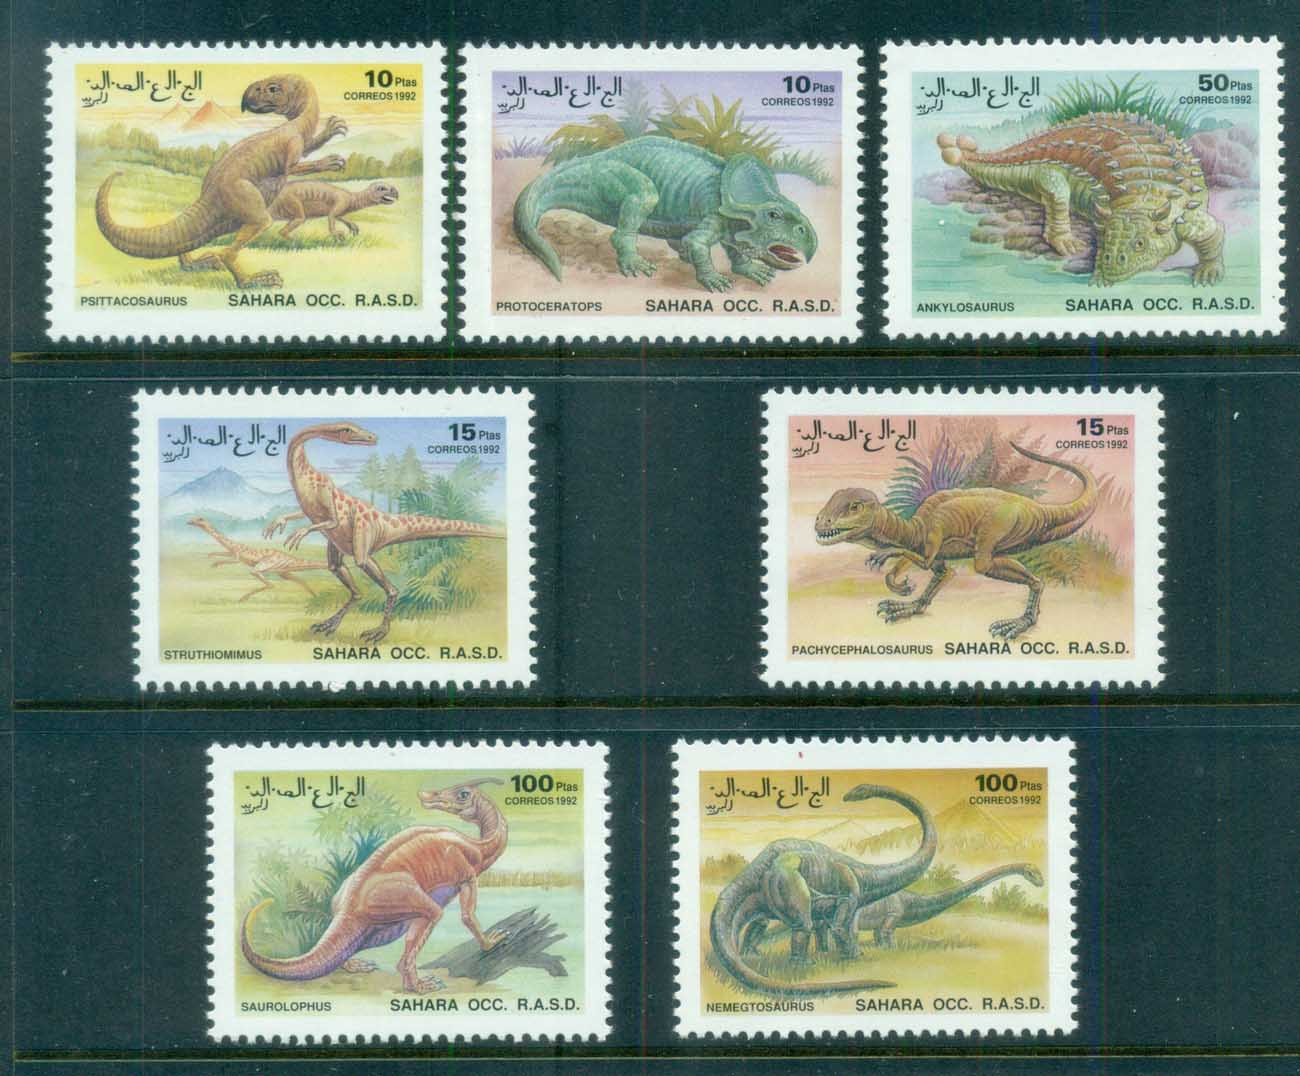 Sahara Occidental 1992 Dinosaurs MUH